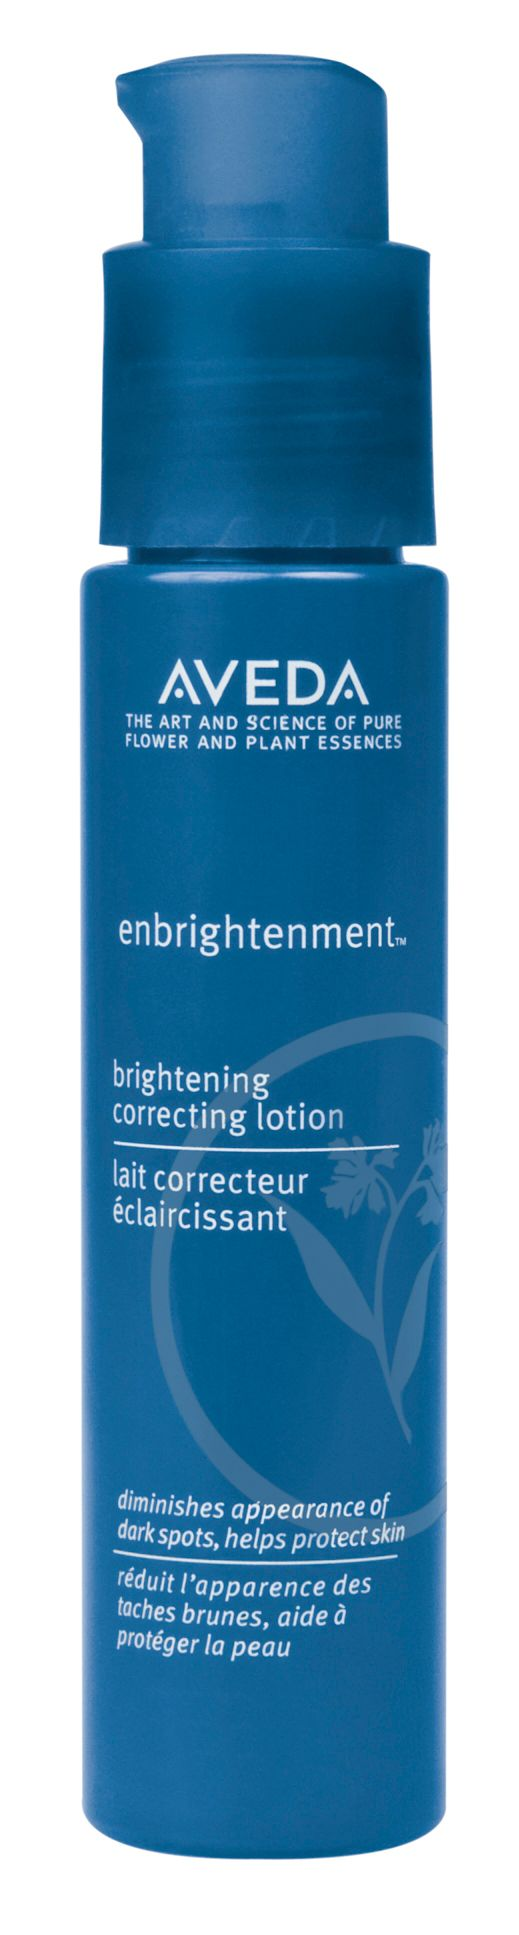 Enbrightenment Correcting Lotion 50ml